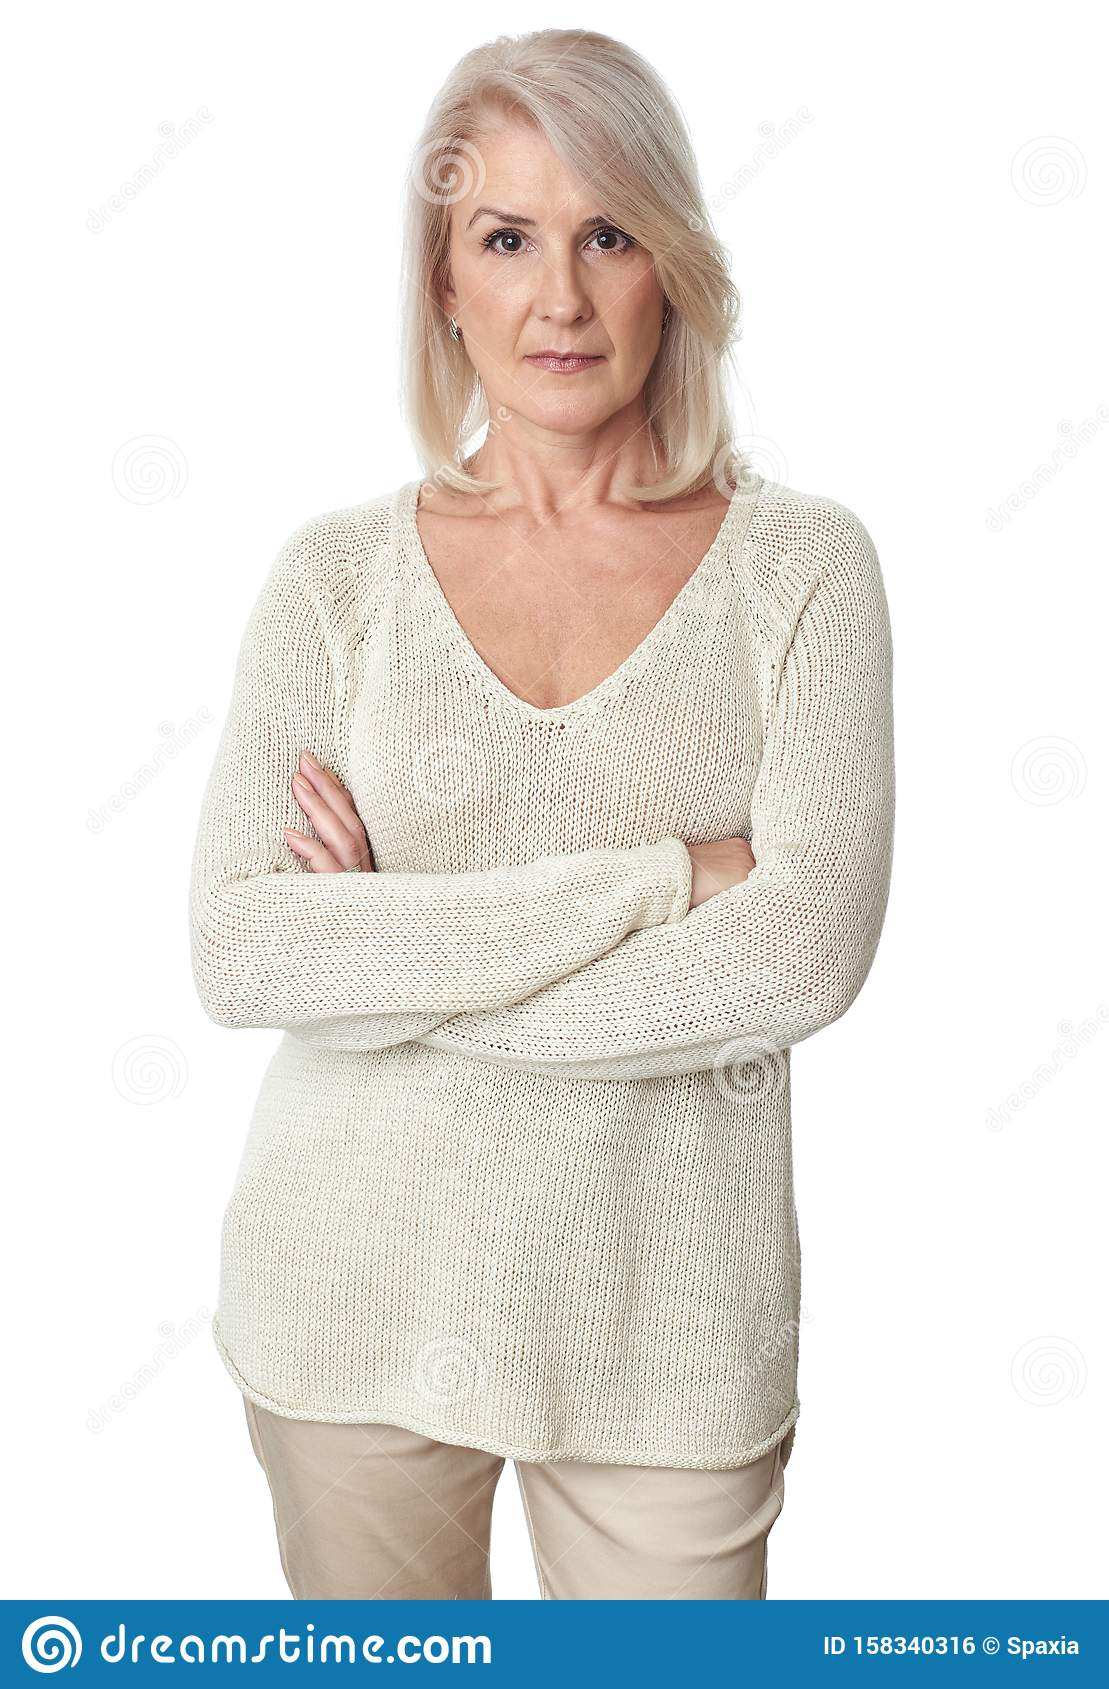 What to buy a 50 year old woman